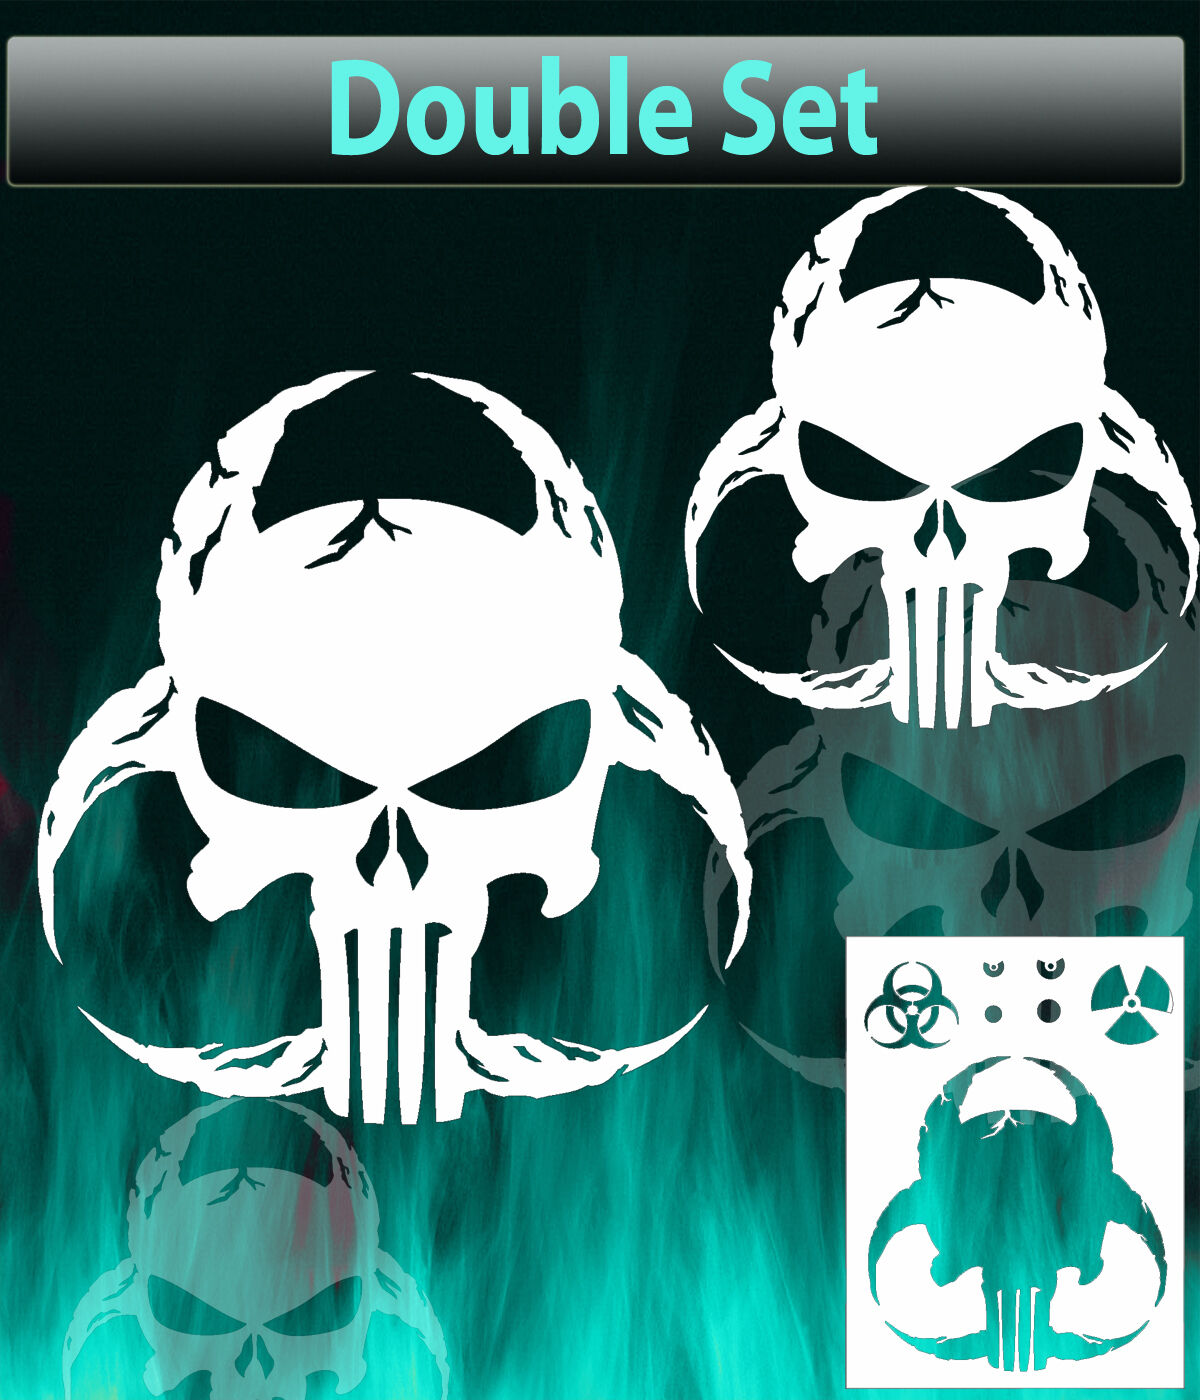 Punisher Skull Biohazard Airbrush Stencil Spray Vision Template 1 Of 1FREE Shipping